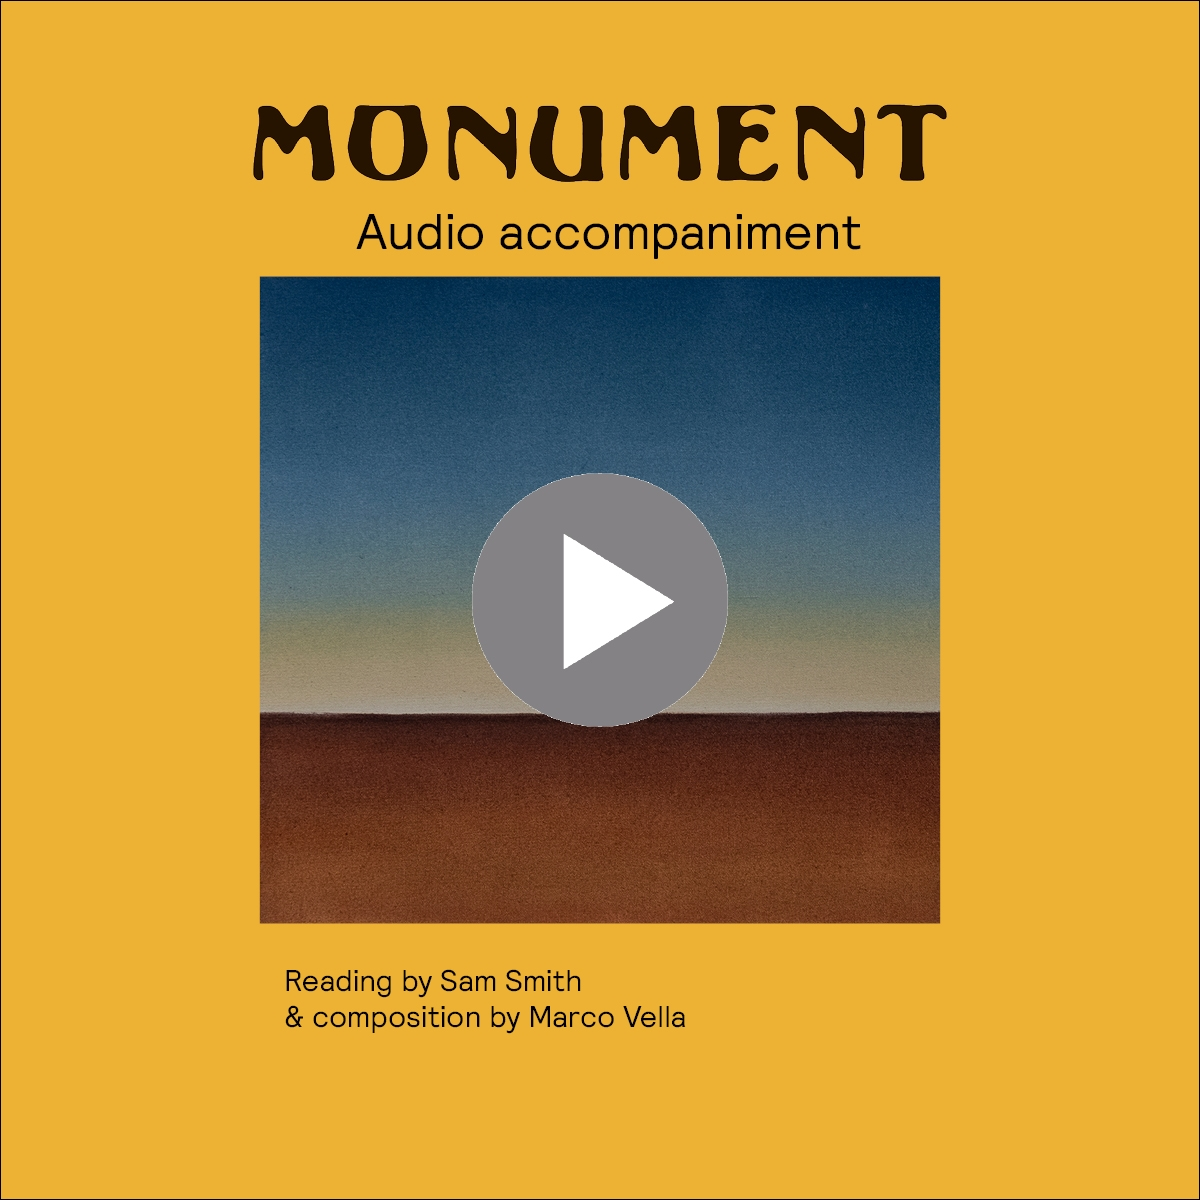 monument audio accompaniment - reading by sam smith and composition by marco vale